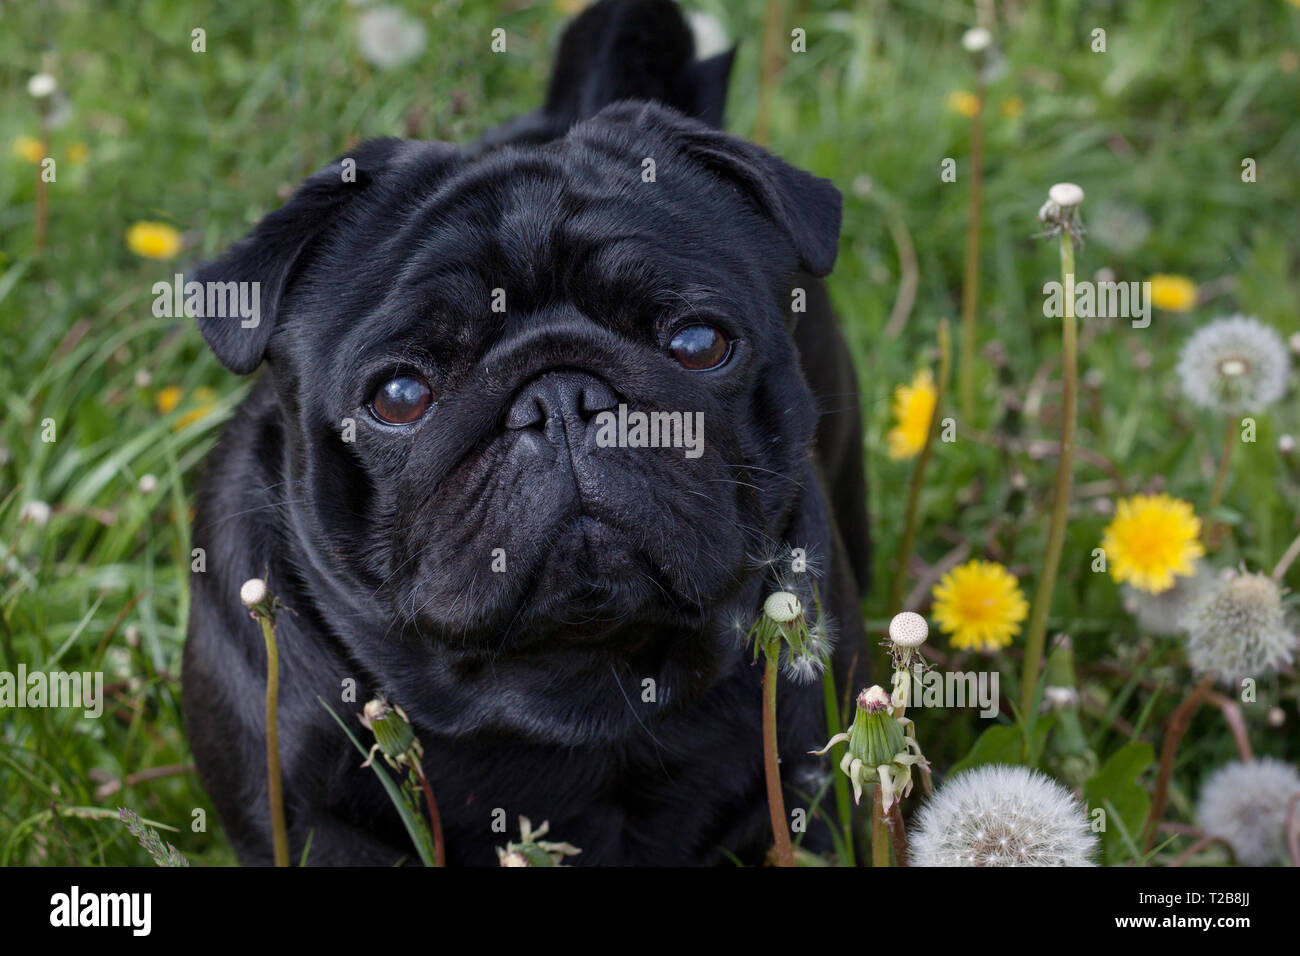 Cute chinese pug puppy is standing on a blooming meadow. Dutch mastiff or mops. Pet animals. Purebred dog. - Stock Image